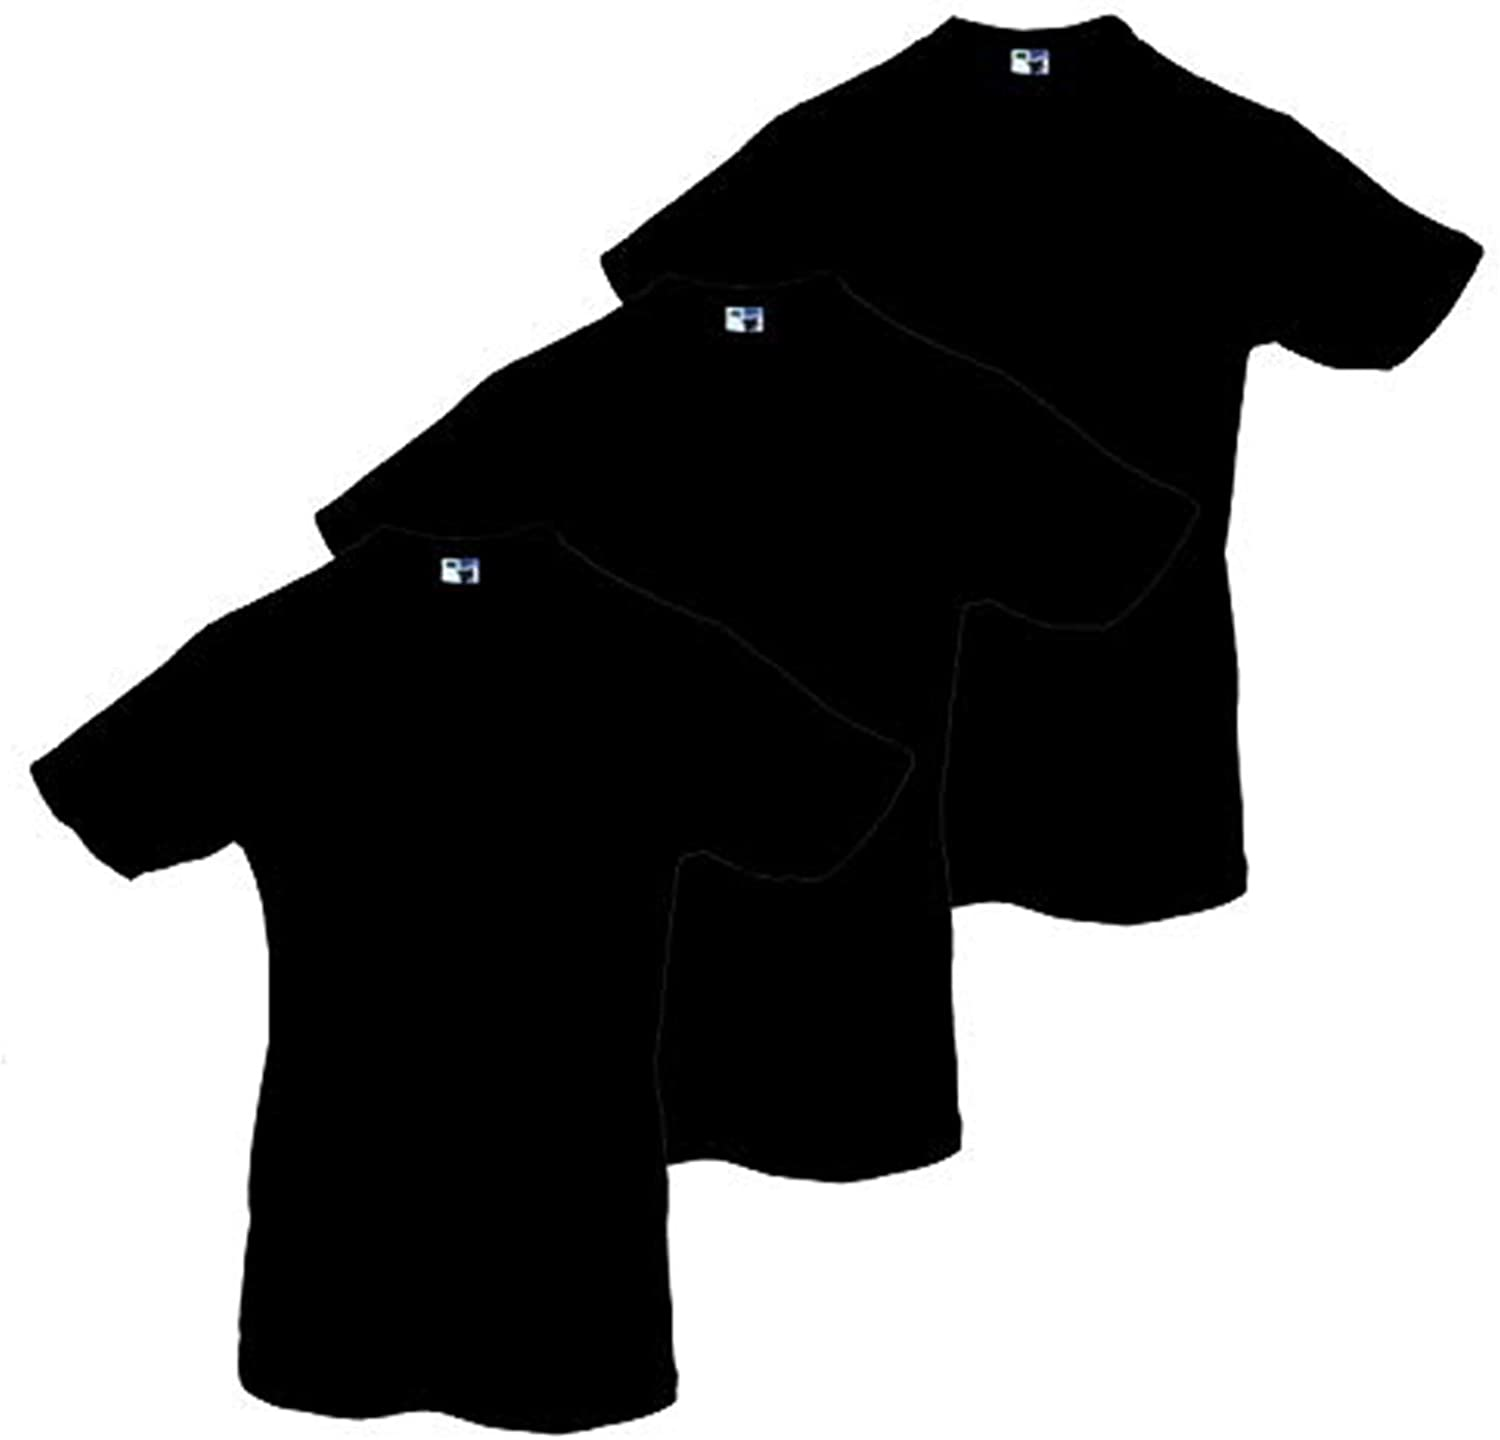 Phat Doc 100% Cotton Super Soft Quality Short Sleeve Crew-Neck Solid Plain T-Shirt for Larger and Taller Men (3-Pack)